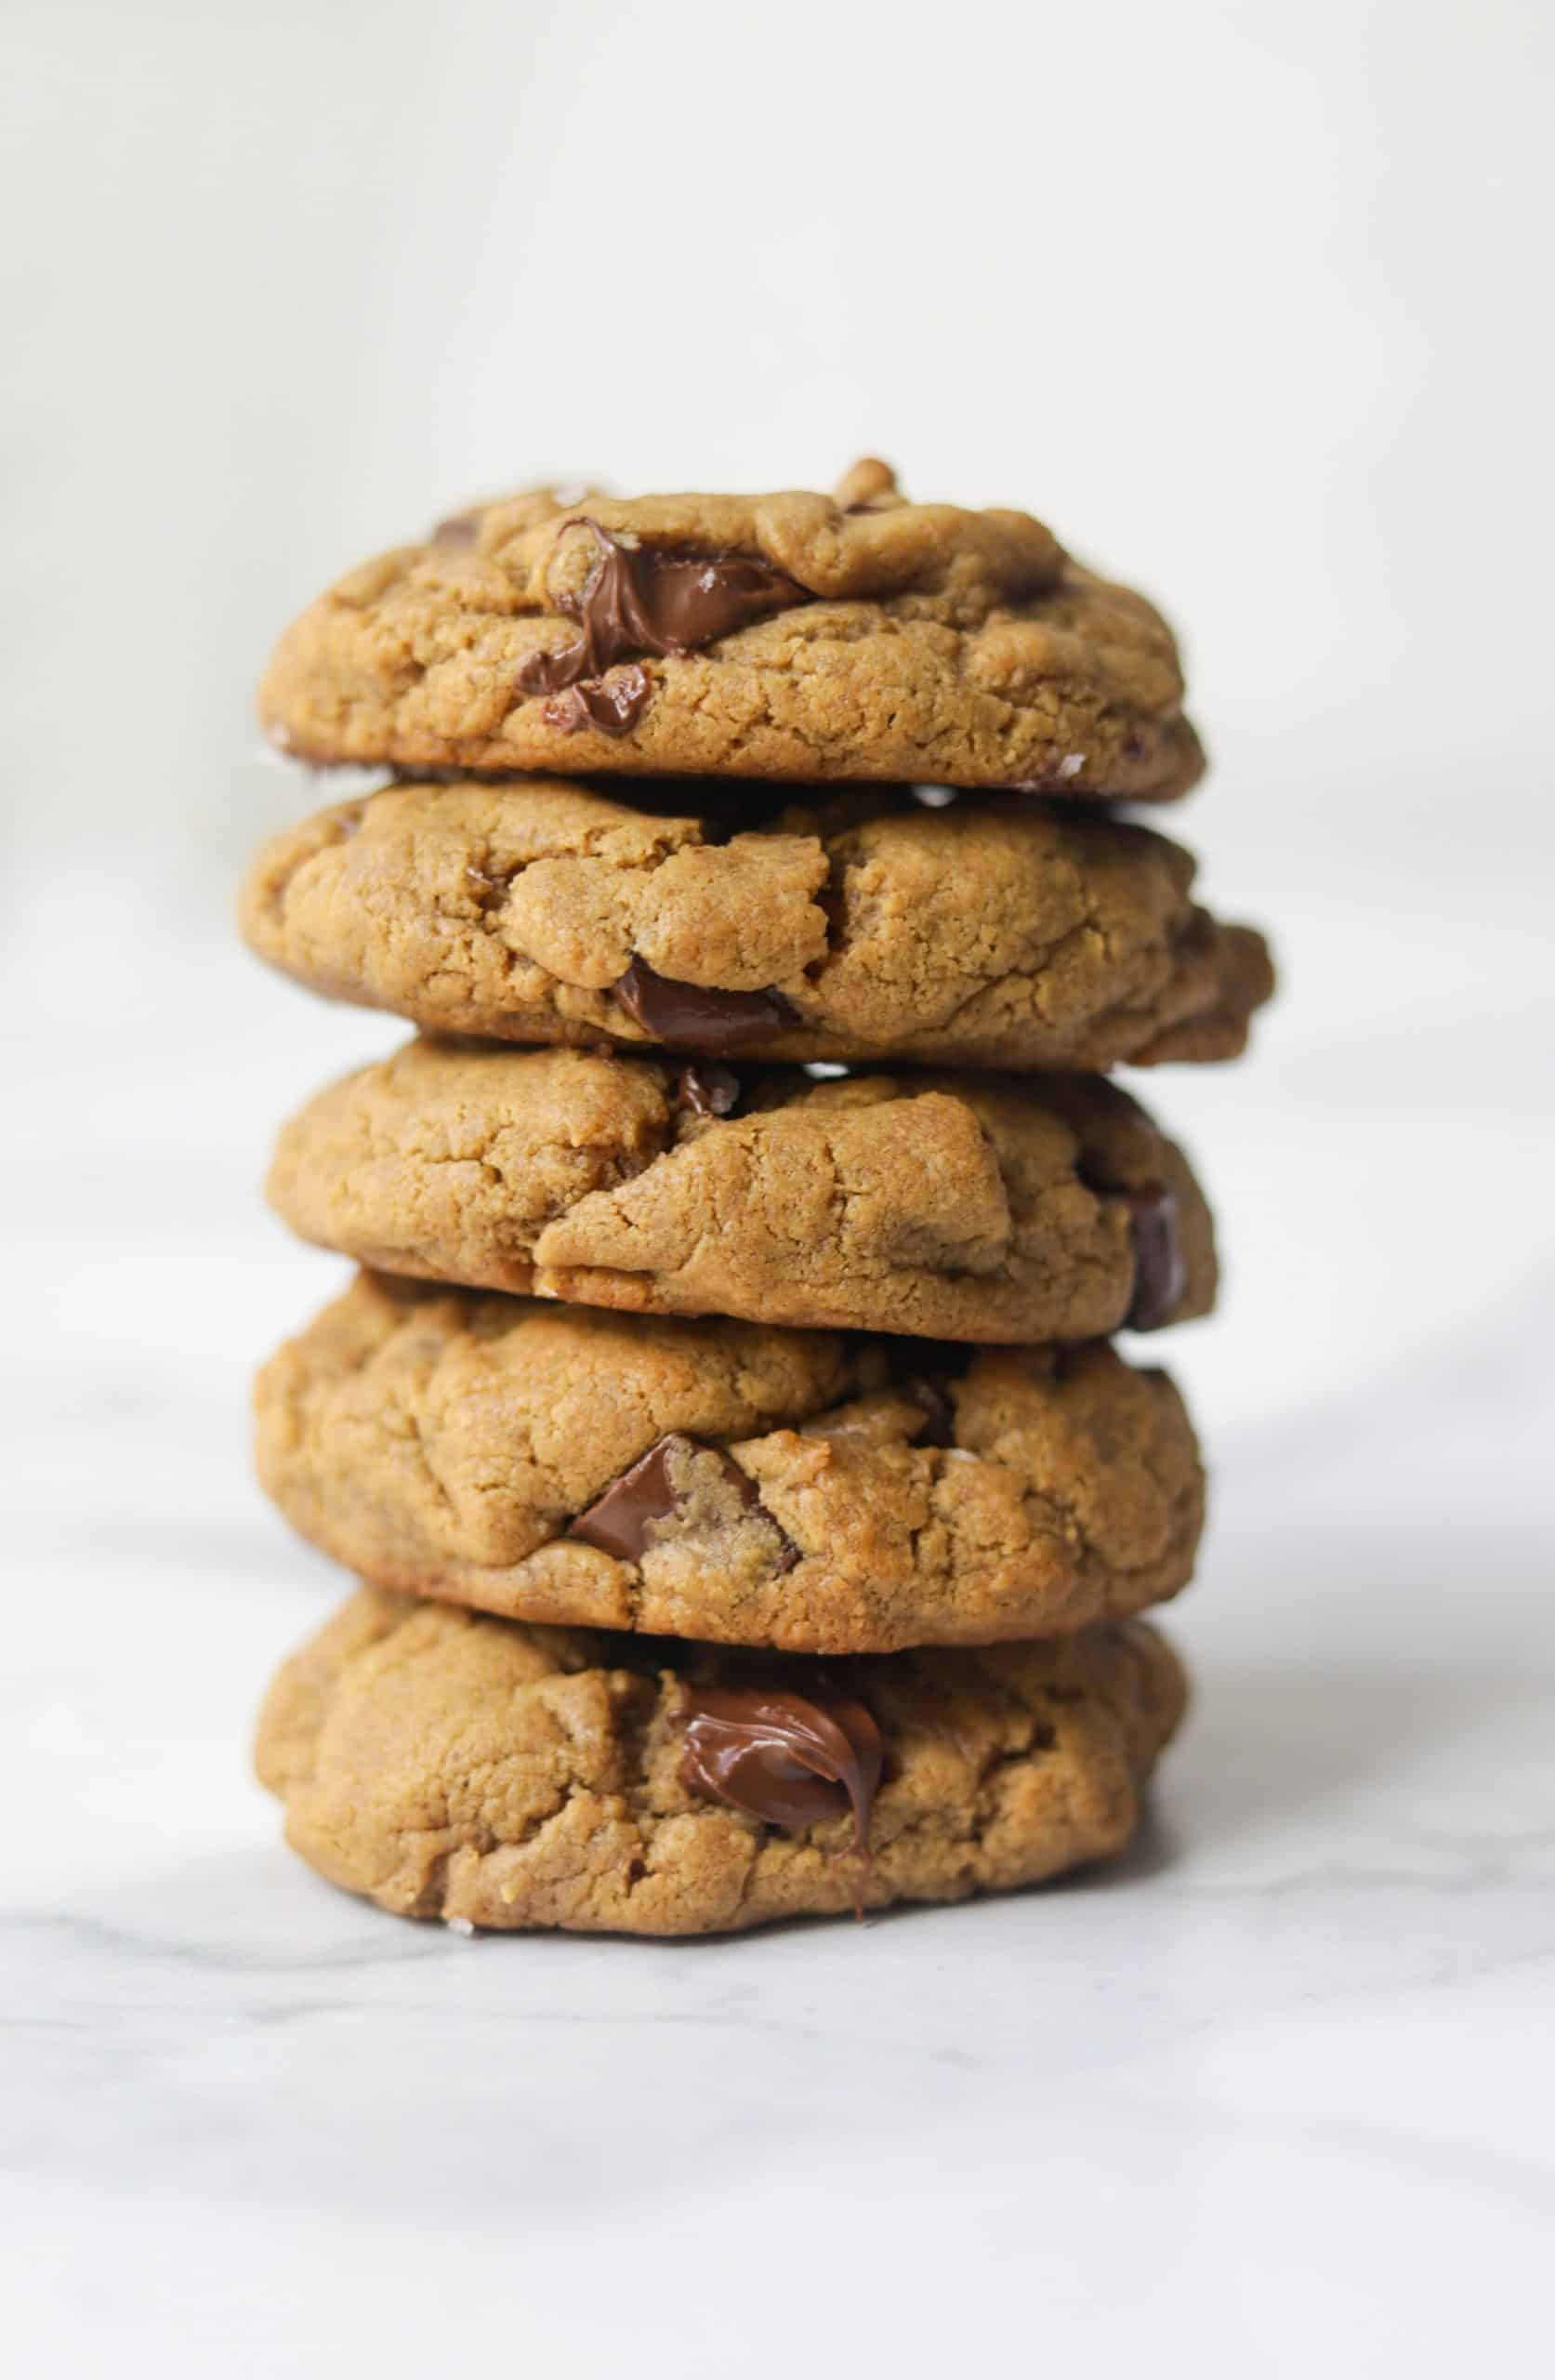 A stack of 5 peanut butter chocolate chip cookies.